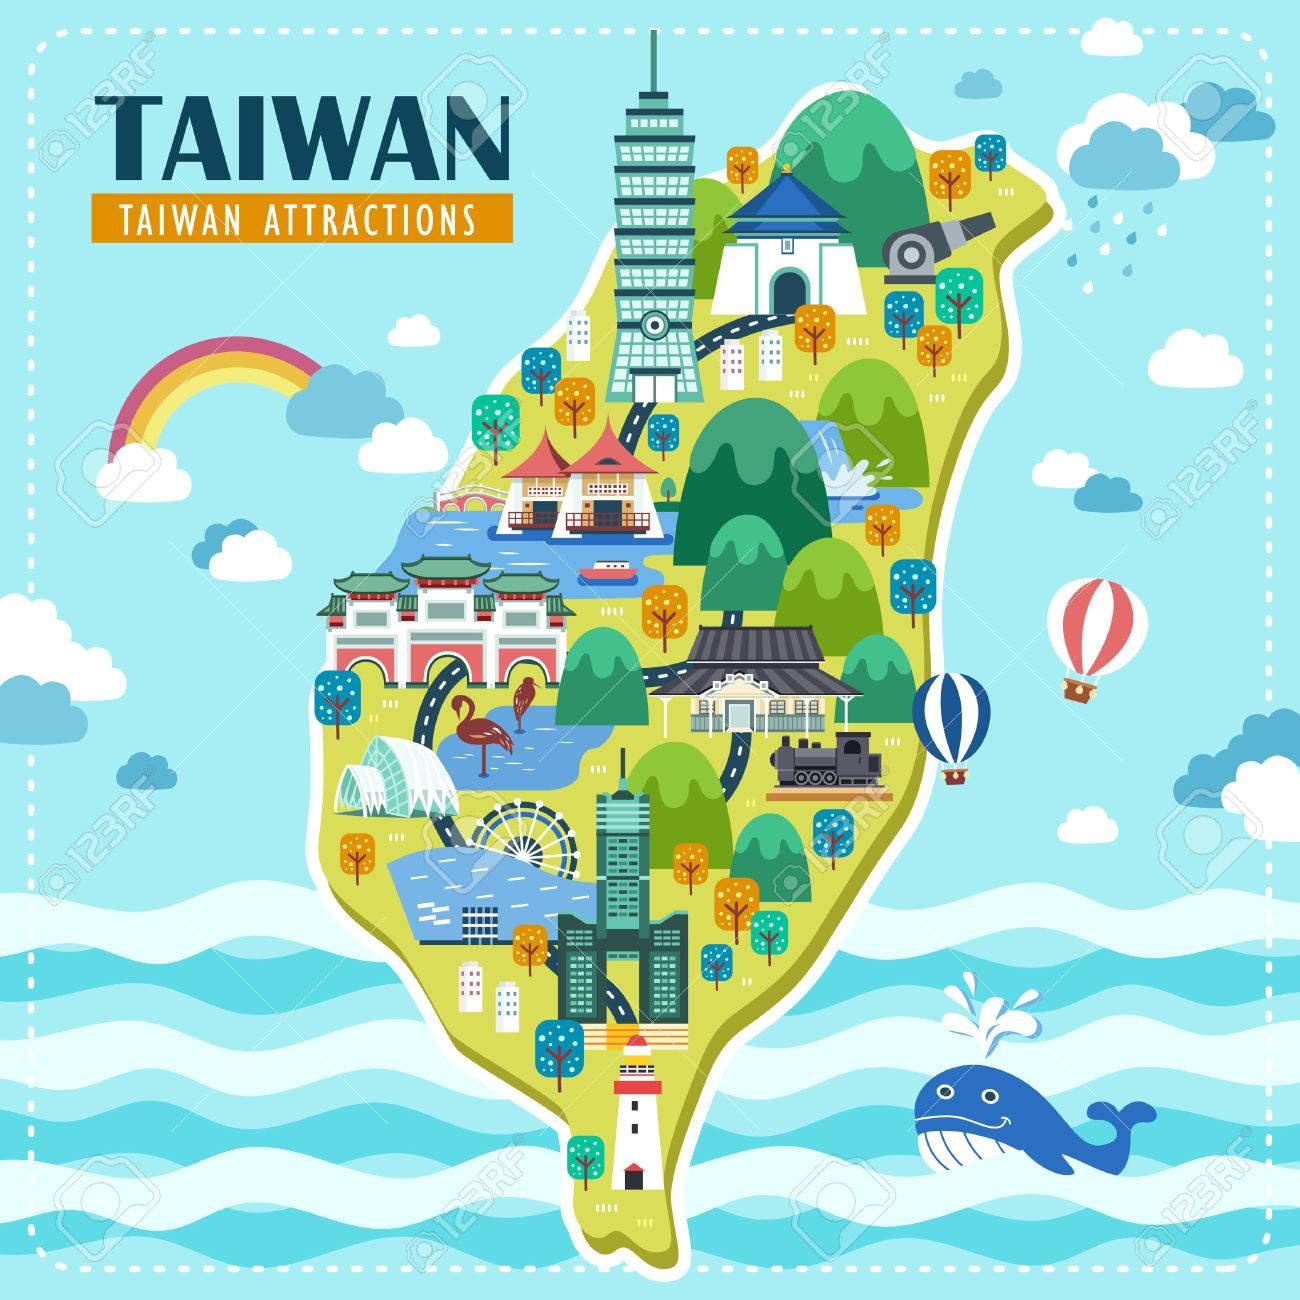 59230279-adorable-taiwan-travel-map-design-with-famous-attractions.jpg